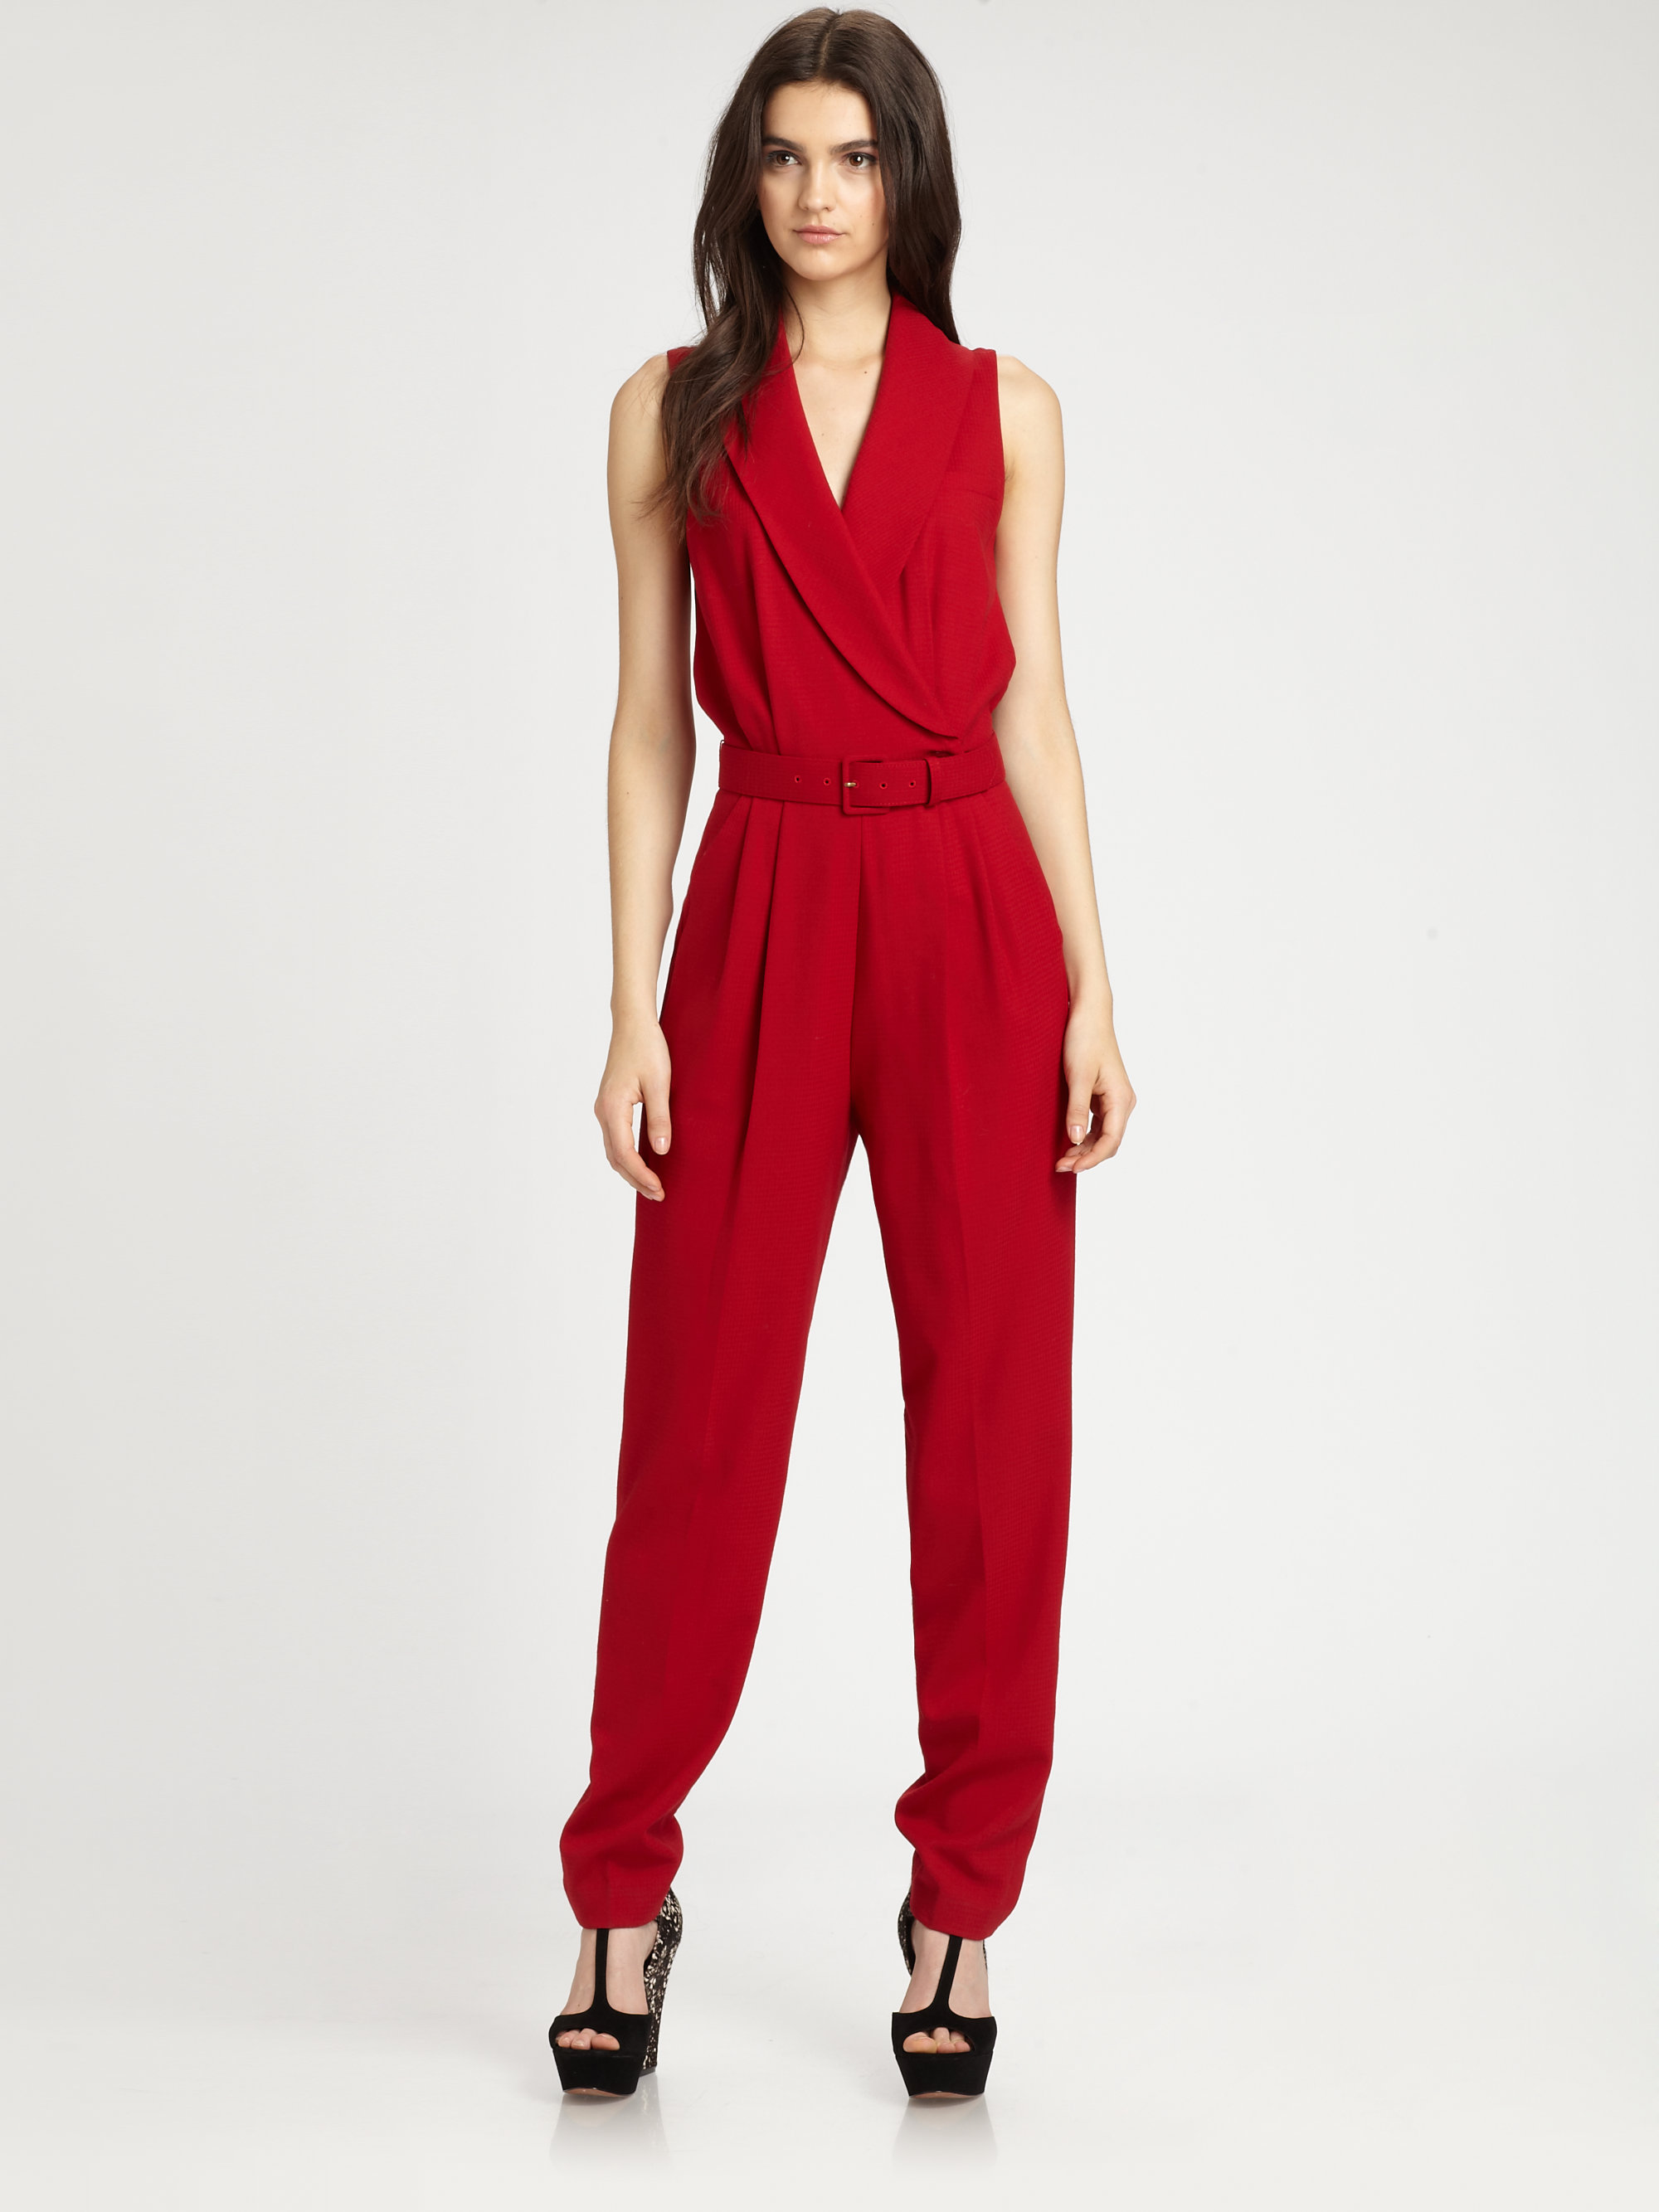 Rachel zoe Wool Suiting Jumpsuit in Red | Lyst